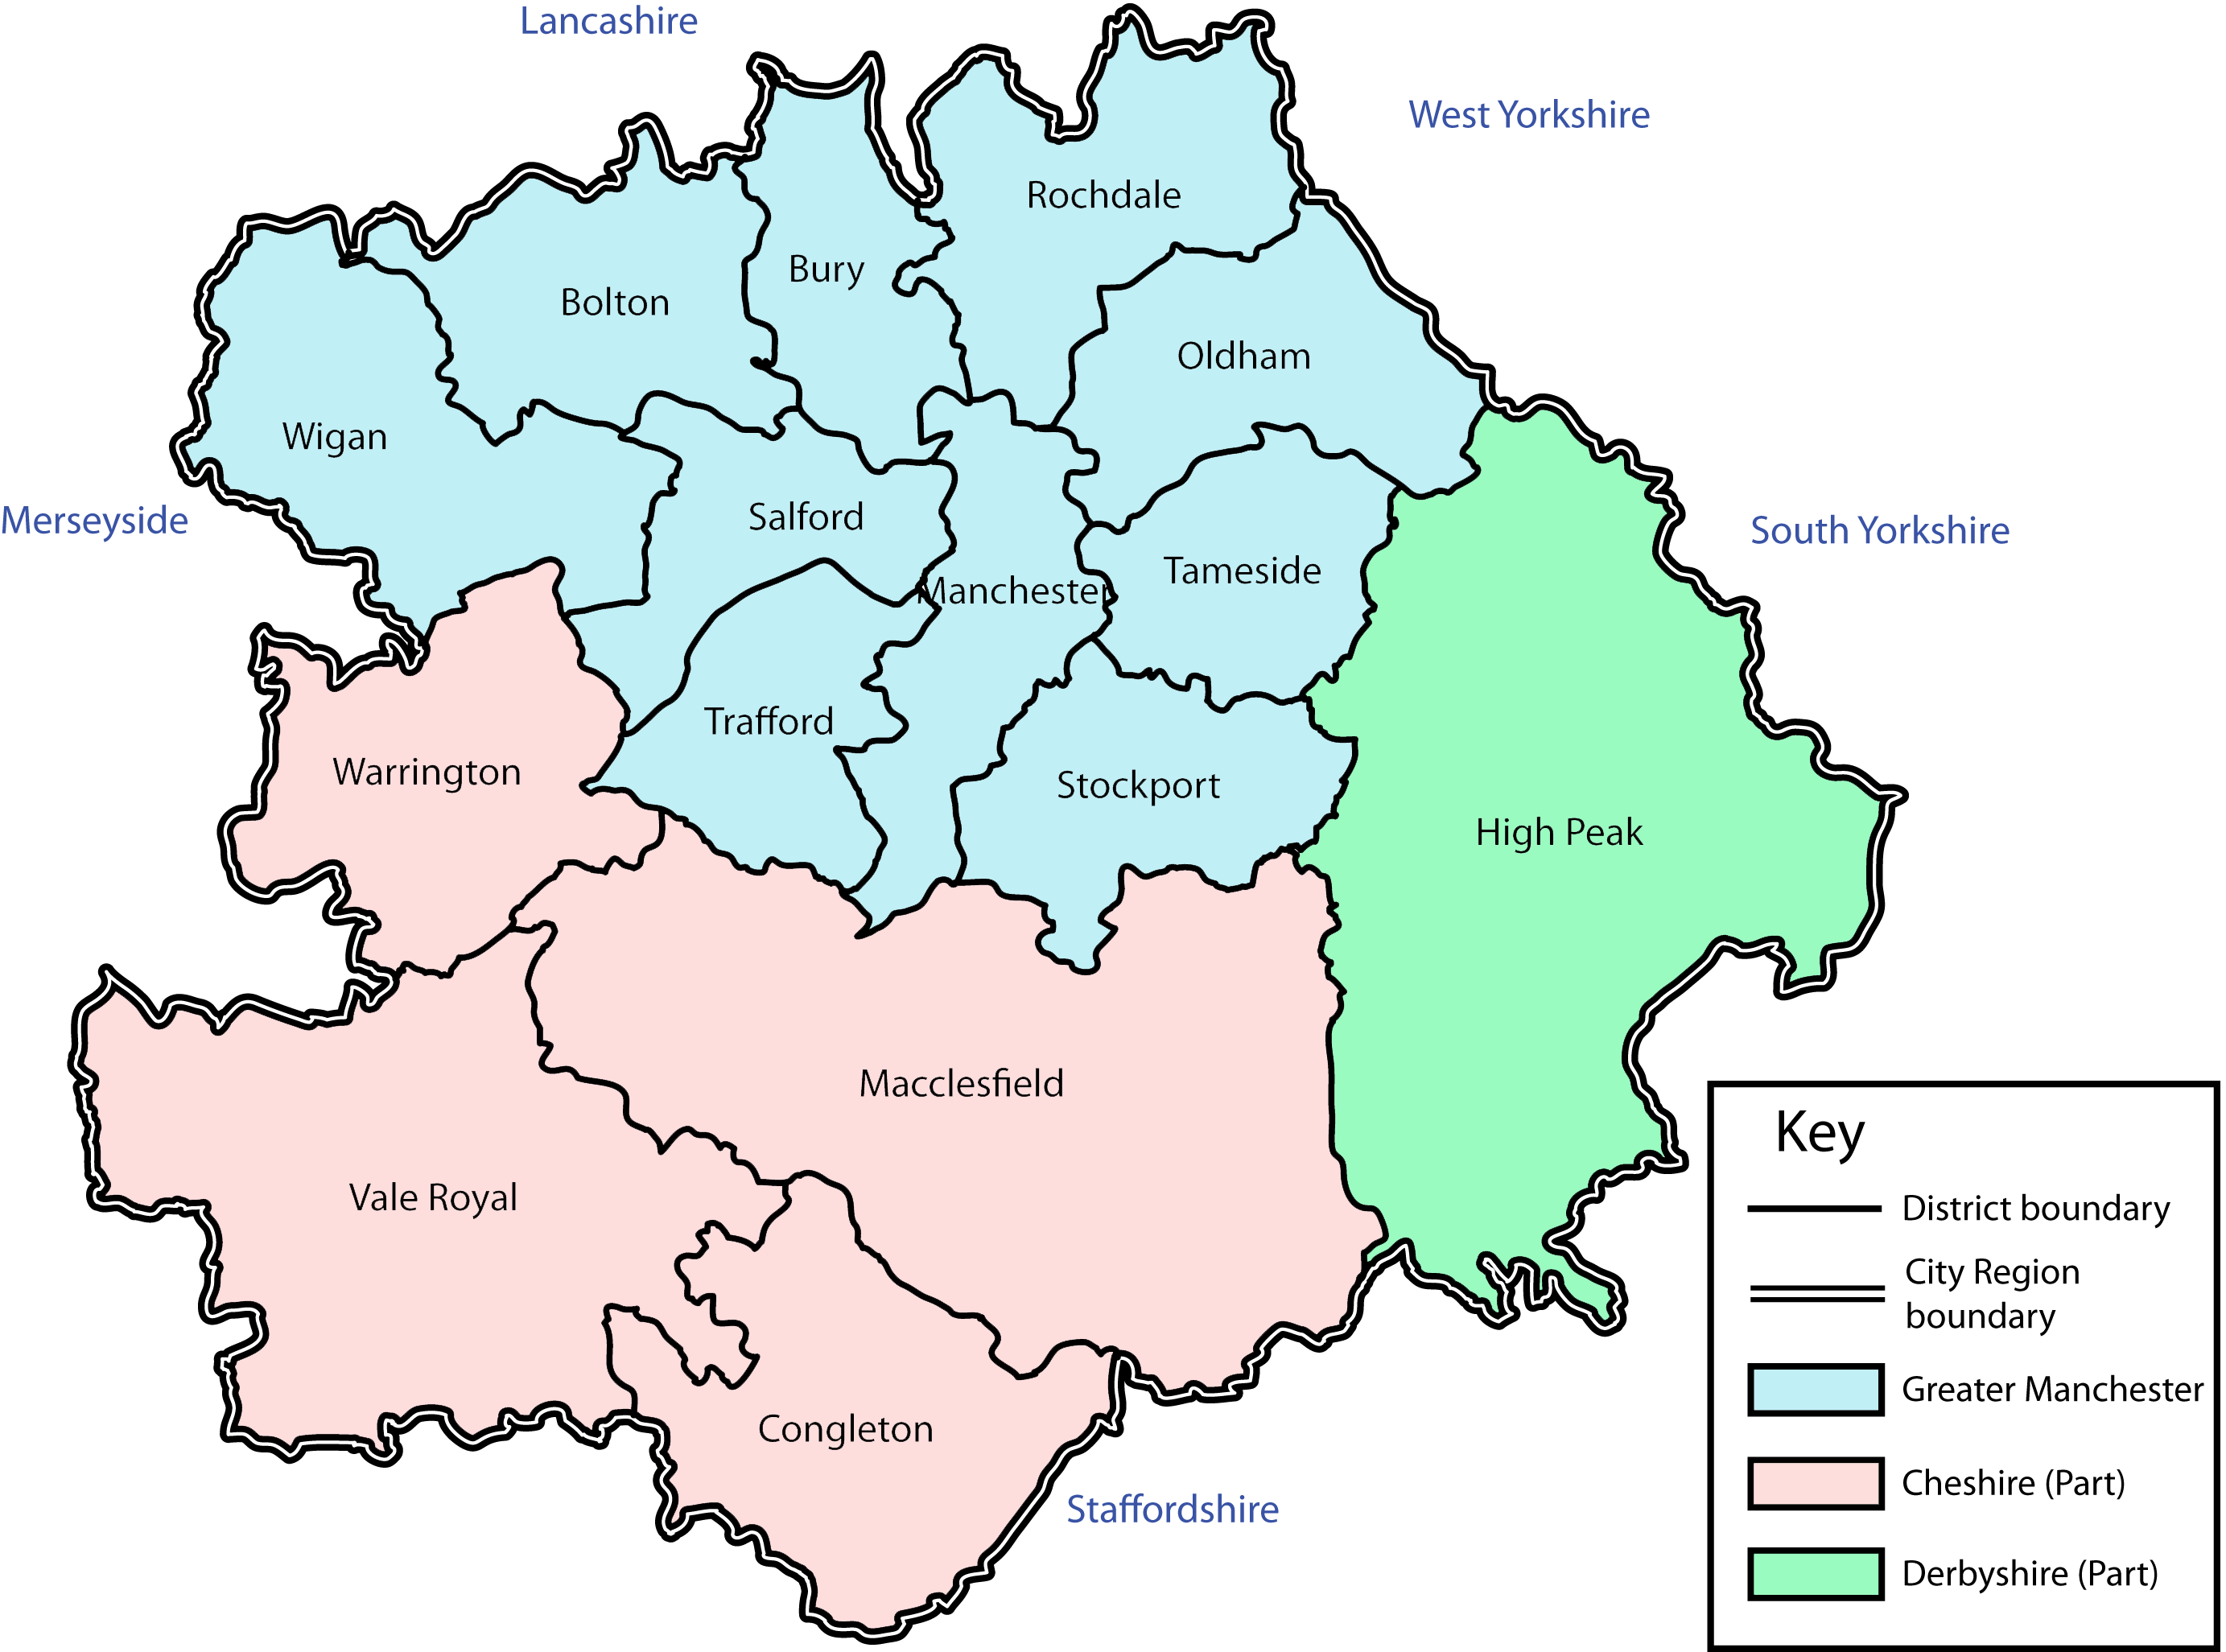 Manchester City Map File:Manchester City Region.png   Wikimedia Commons